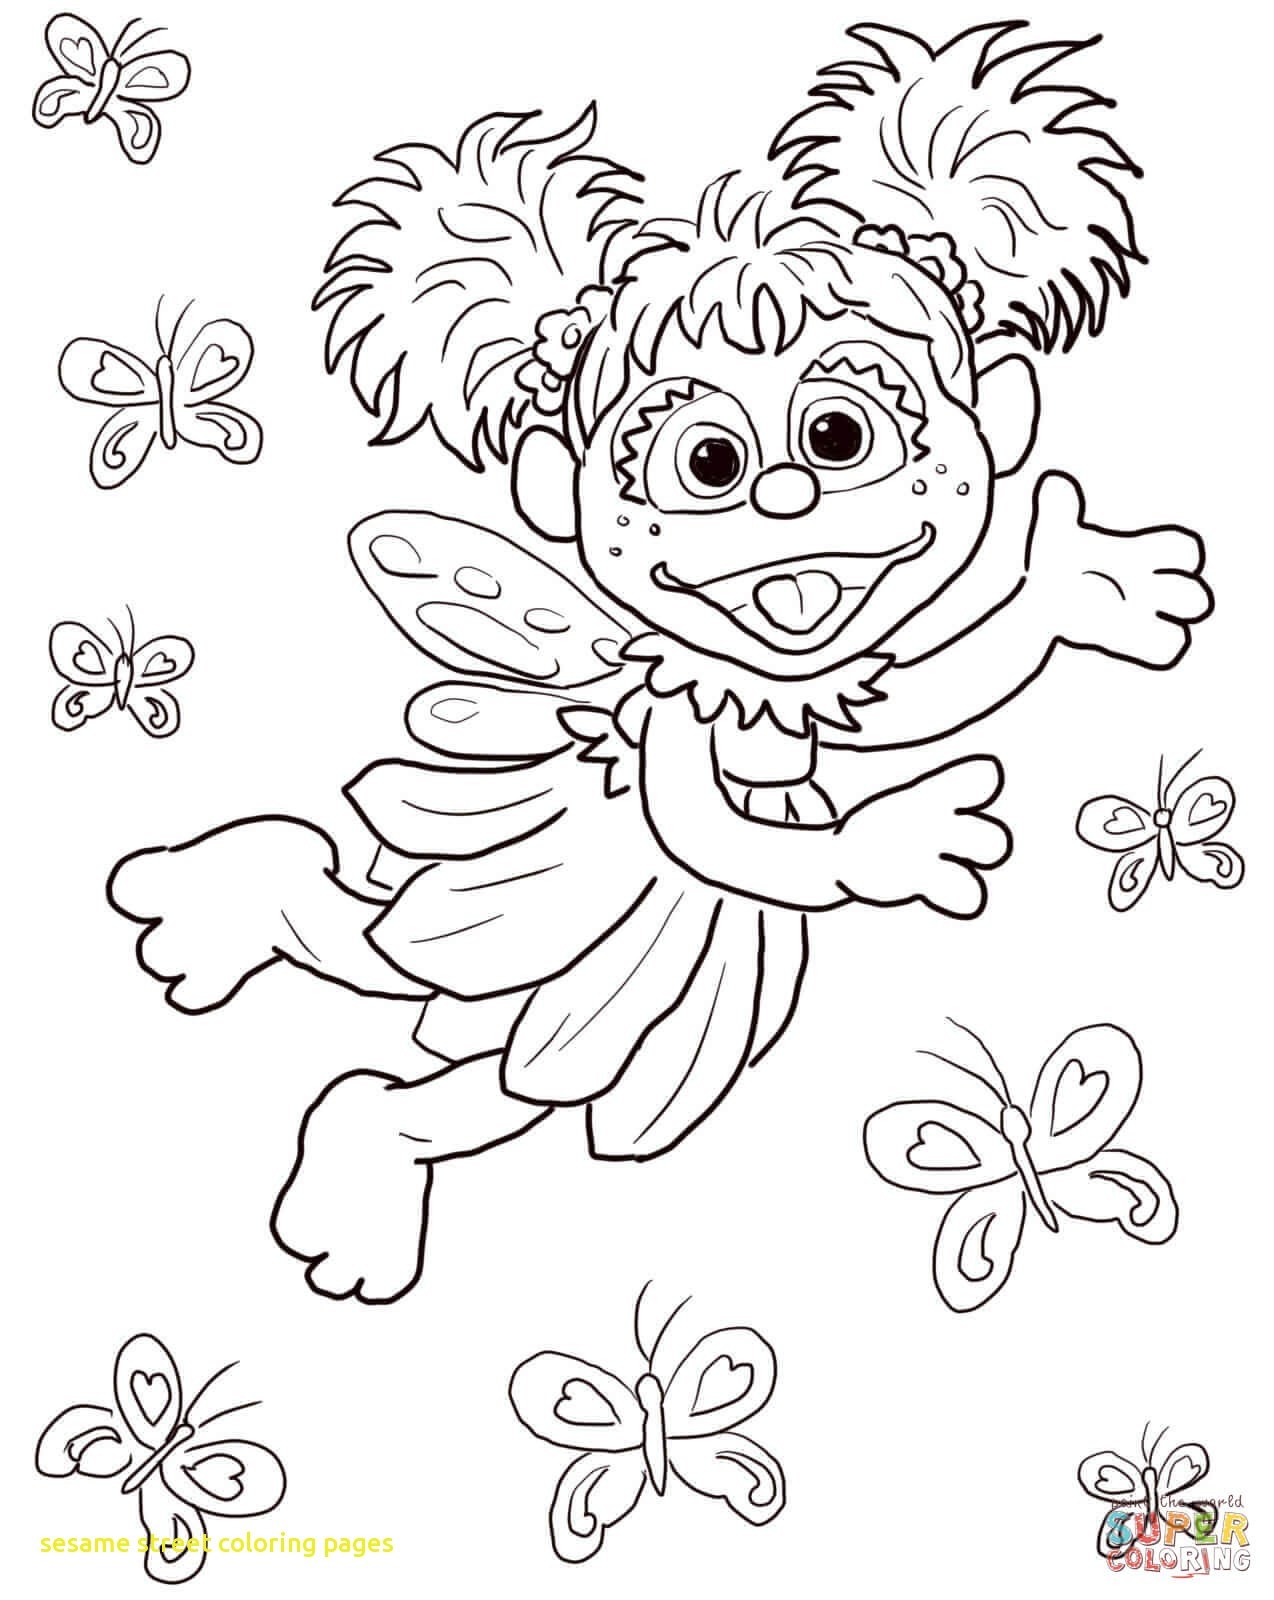 1274x1600 Sesame Street Coloring Pages With Sesame Street Coloring Pages